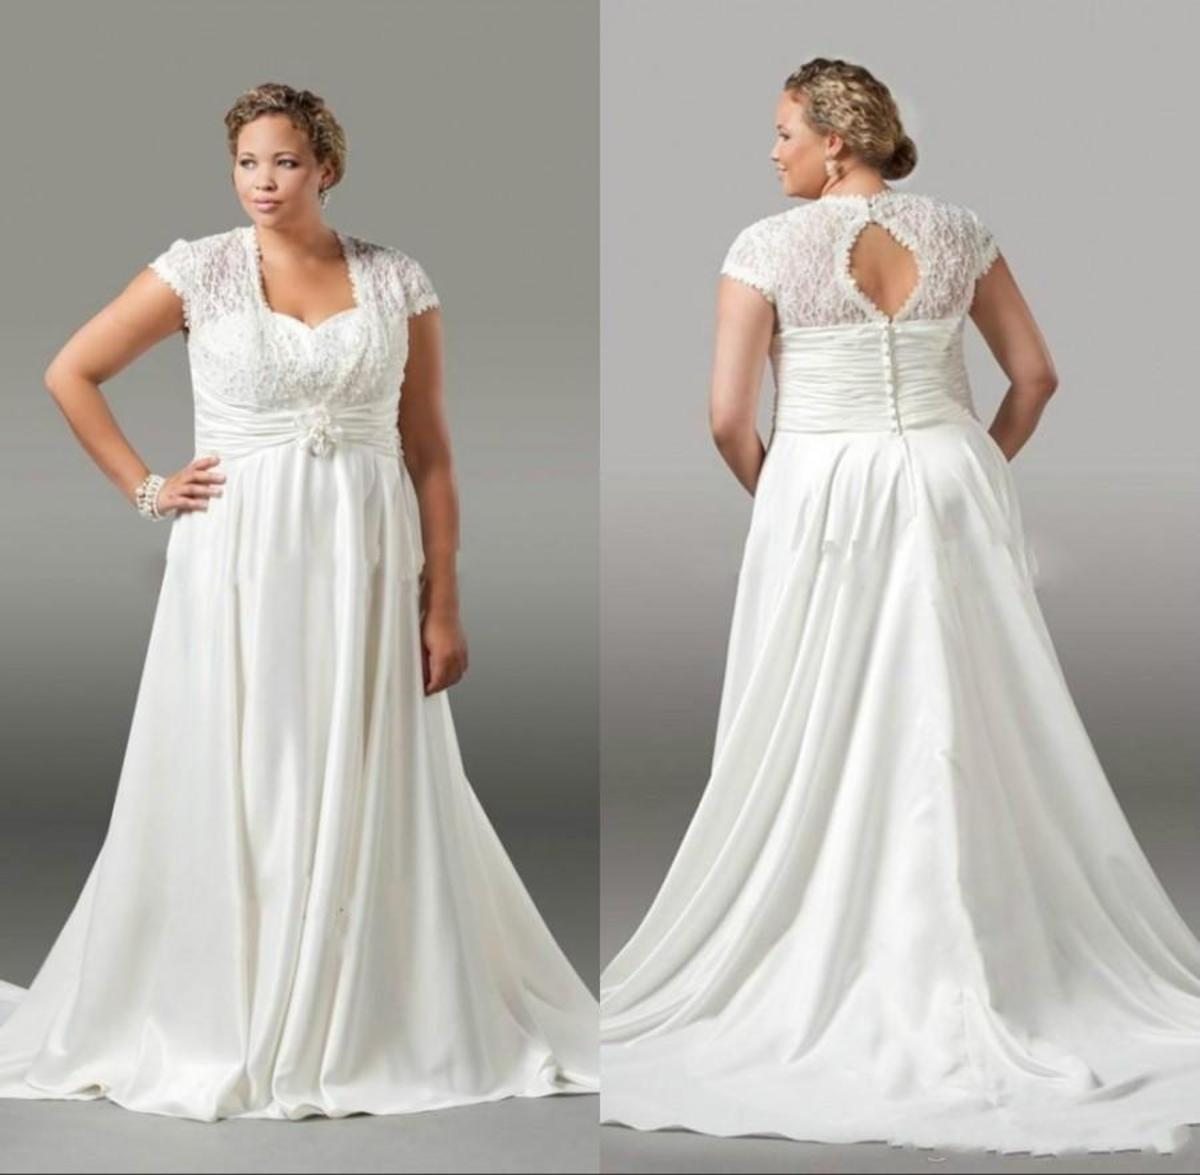 Amazing plus size wedding dress with sleeves and lace back.